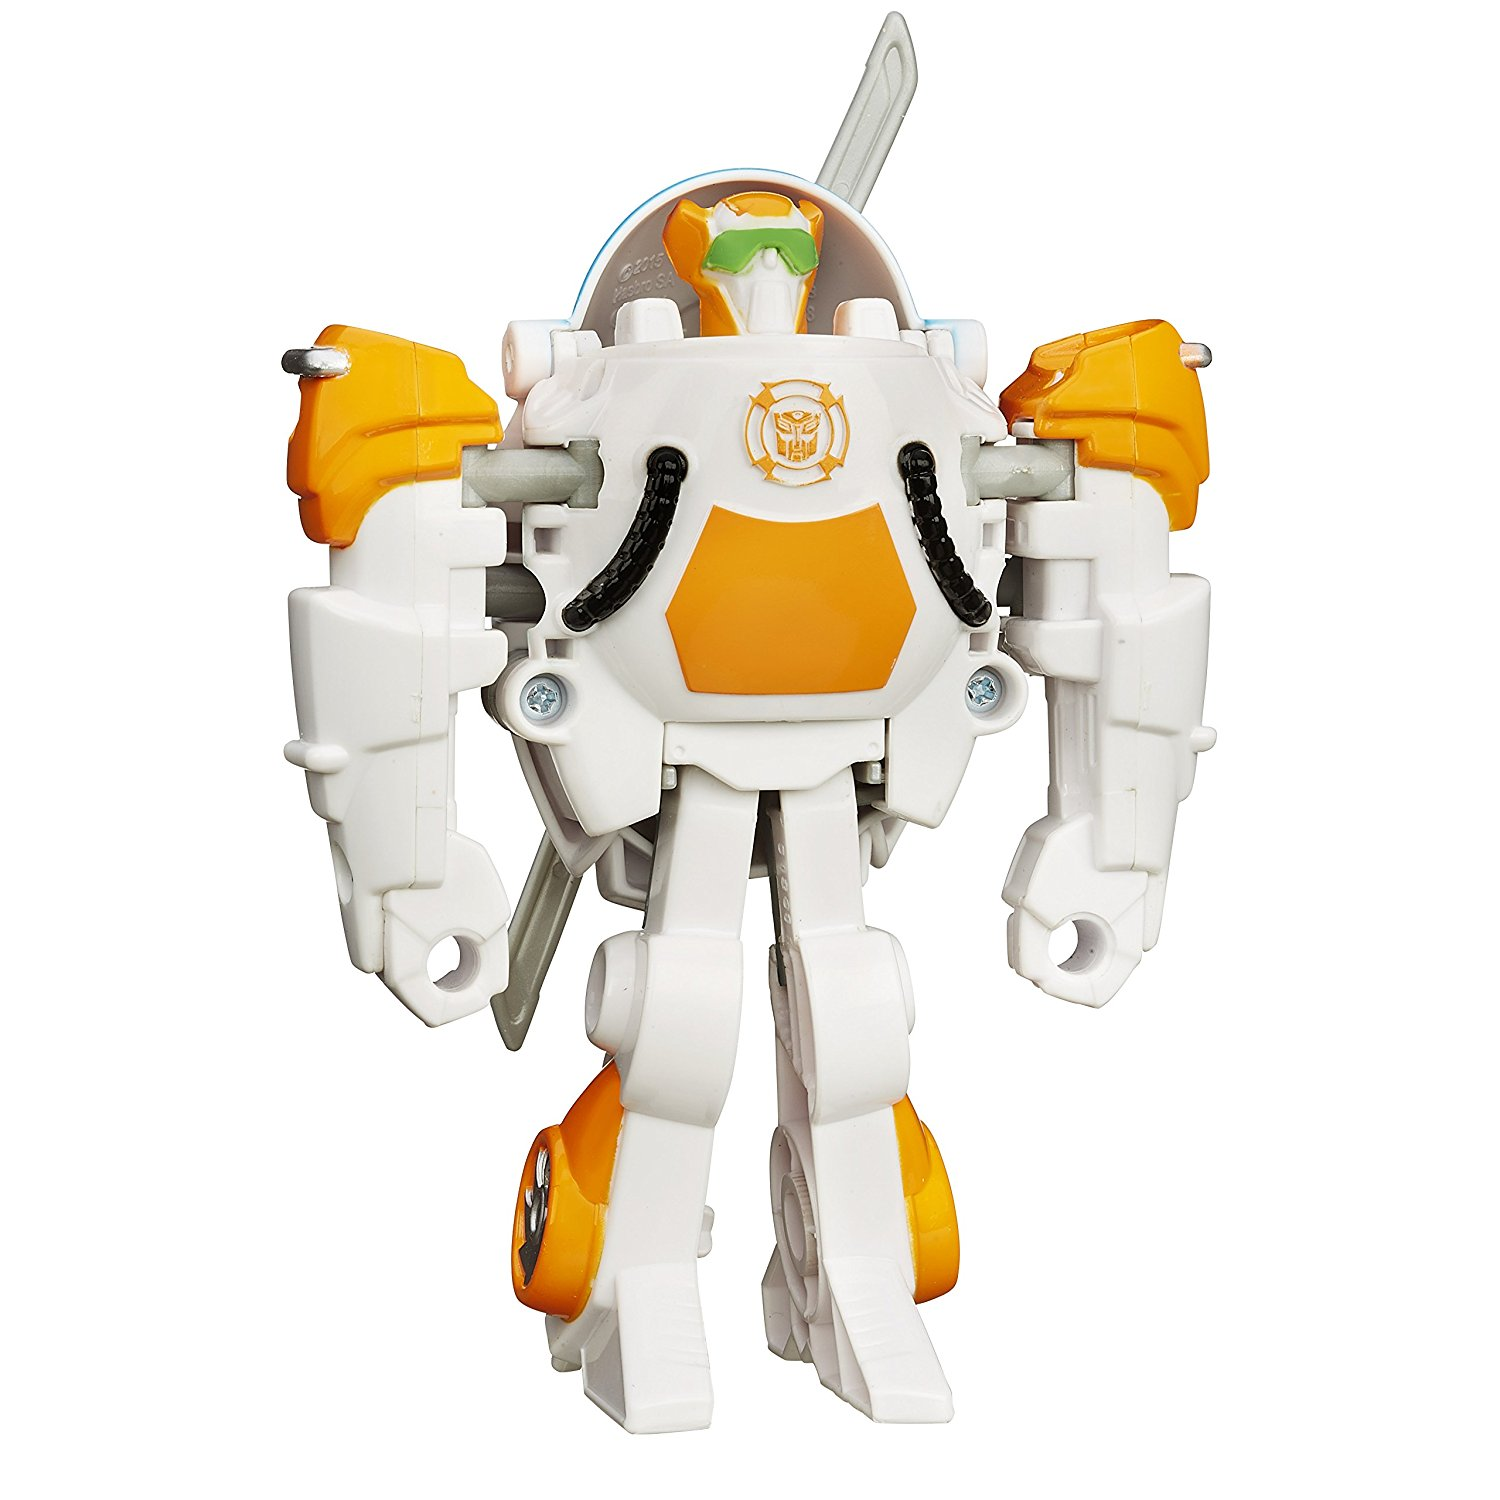 Heroes Transformers Rescue Bots Rescan Blades The Flight Bot Action Figure, Little heroes... by